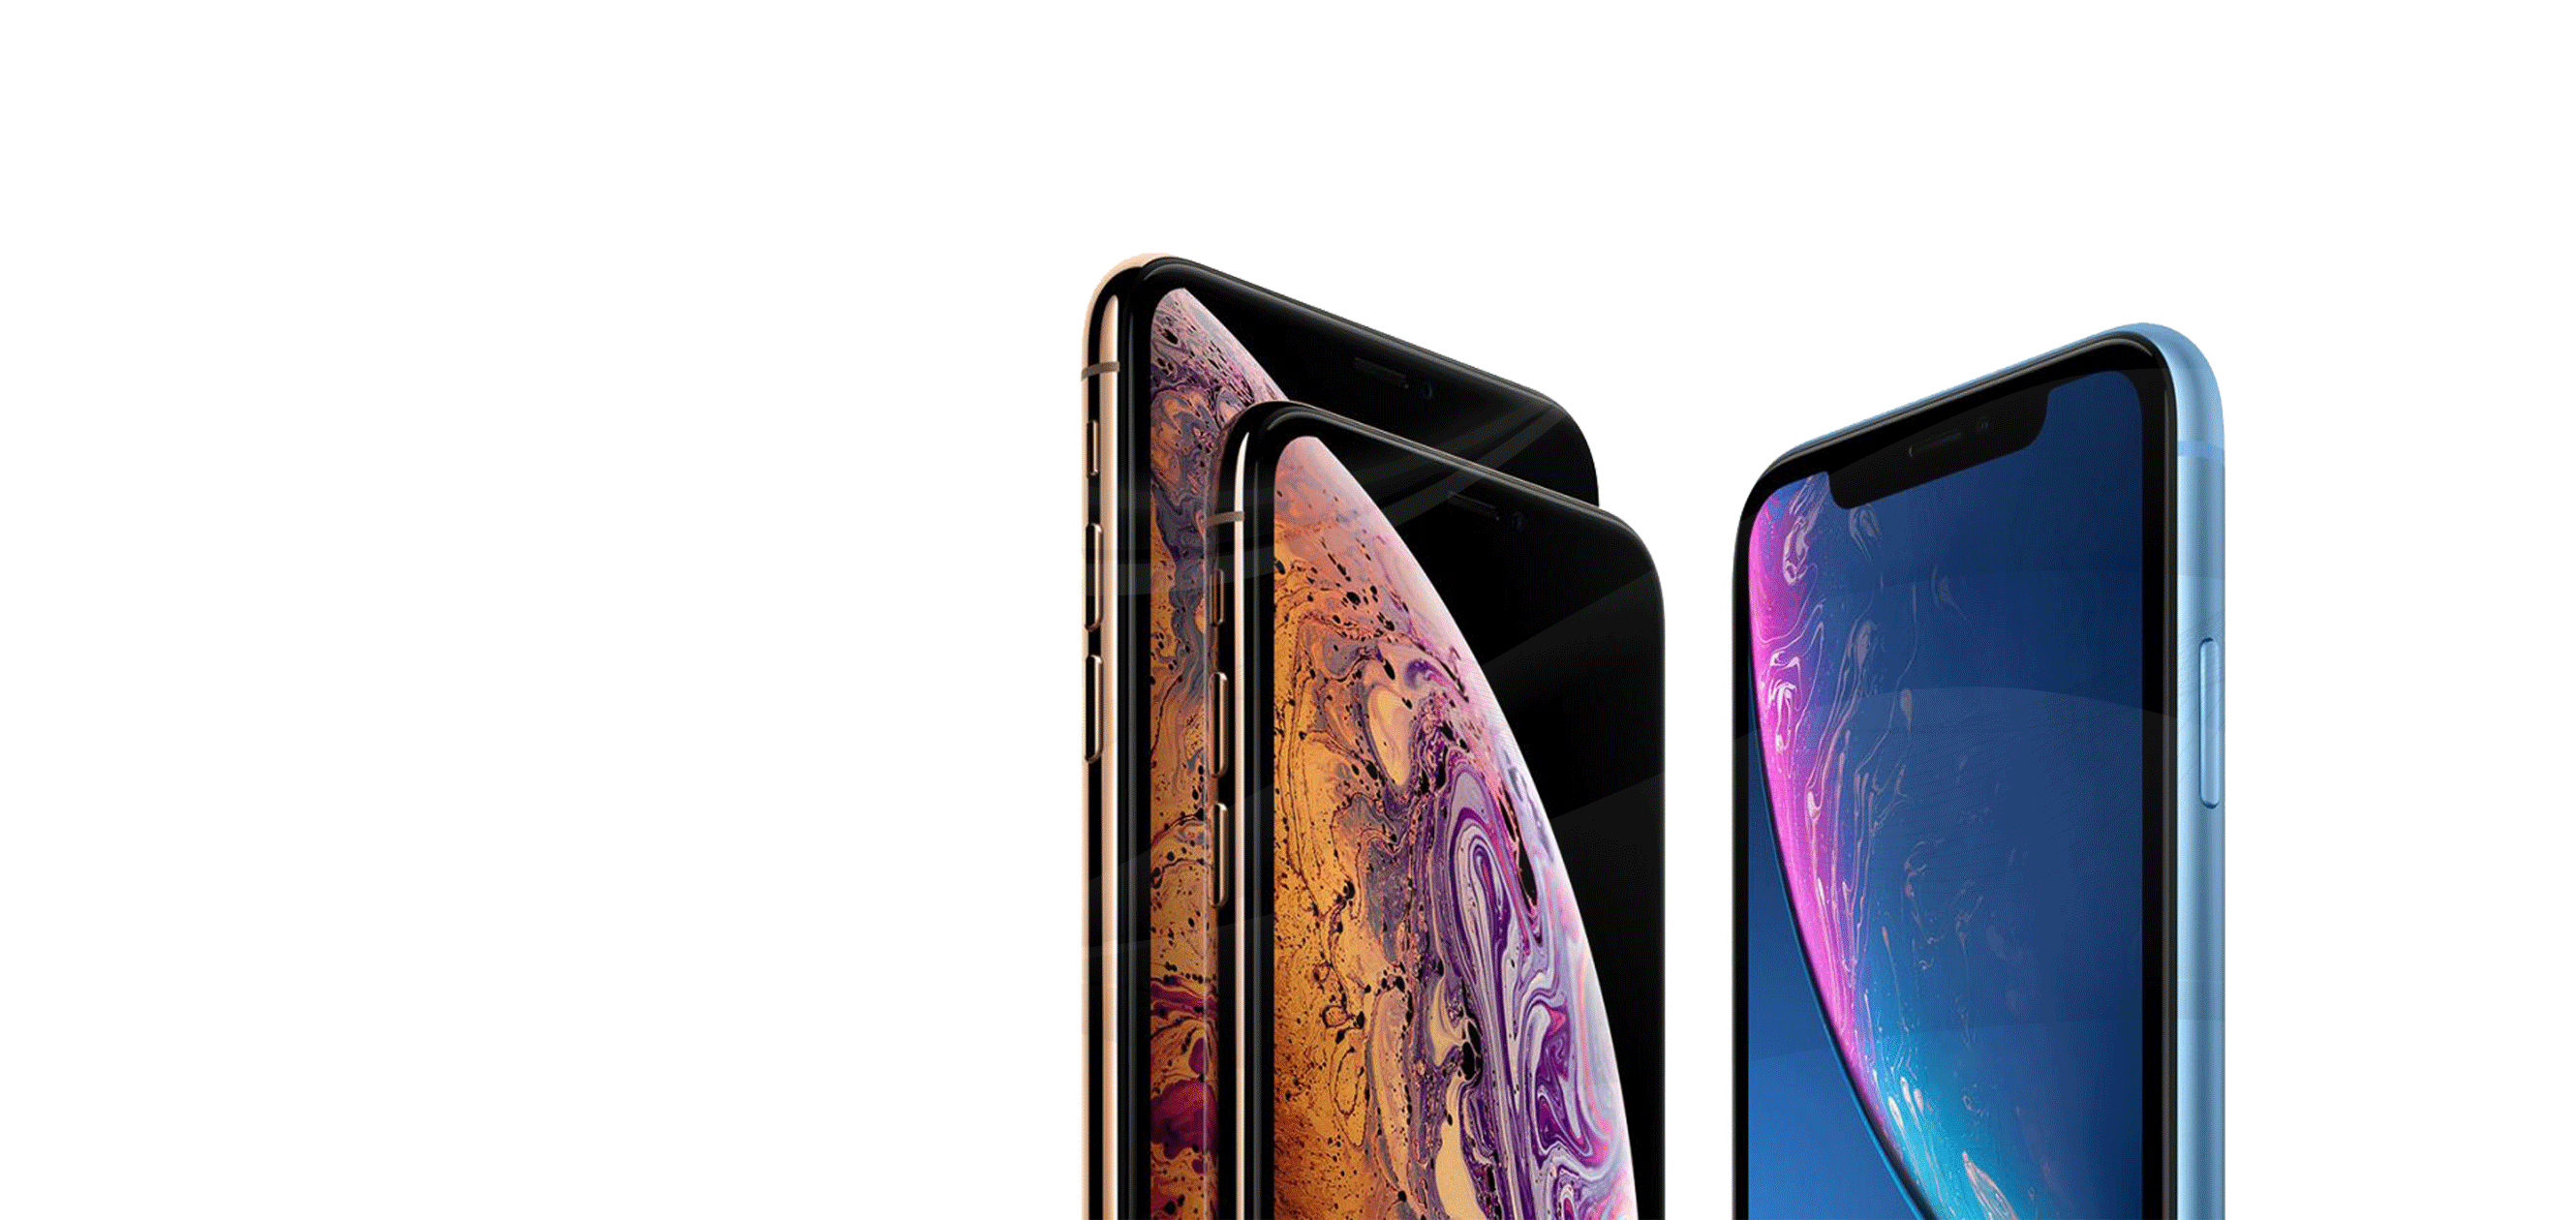 iPhone Xs/Xs Max & Xr accessories